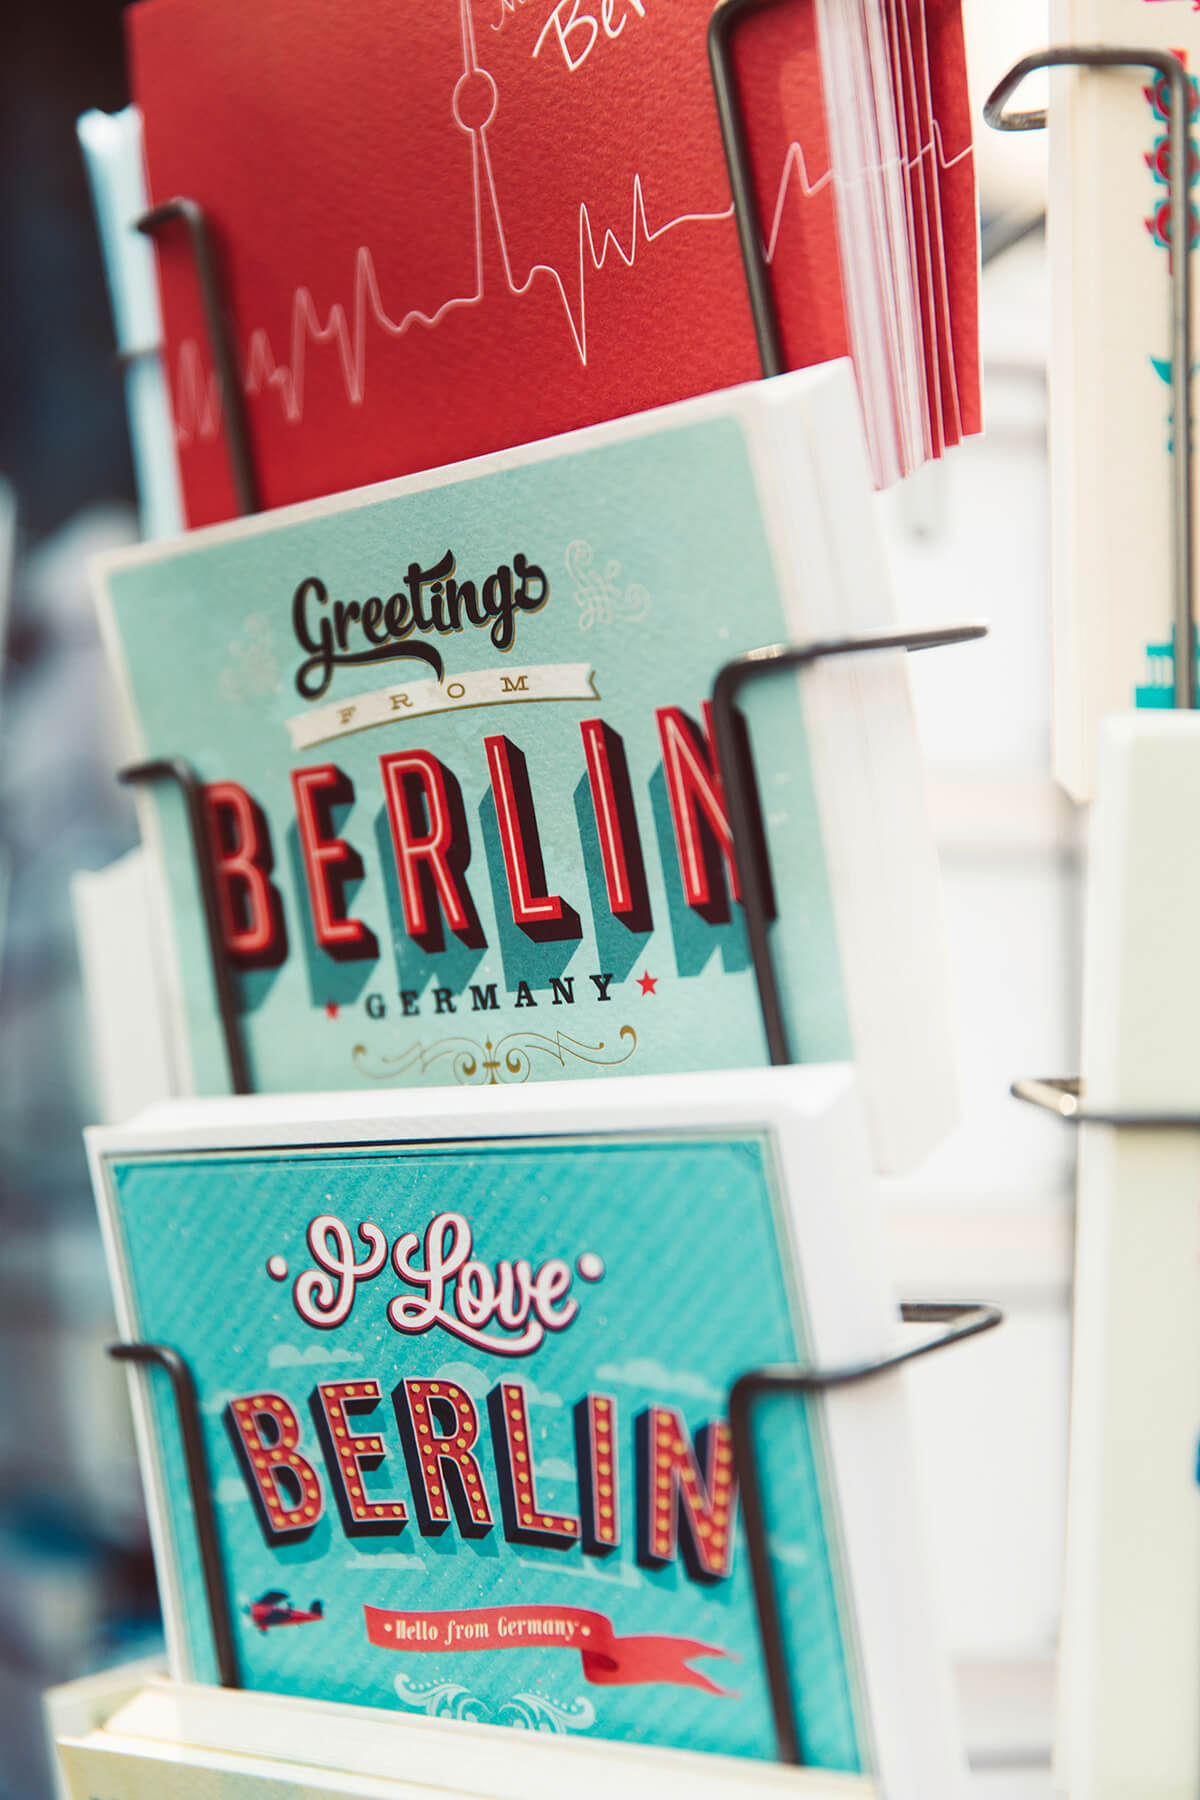 Postcards from Berlin, Germany